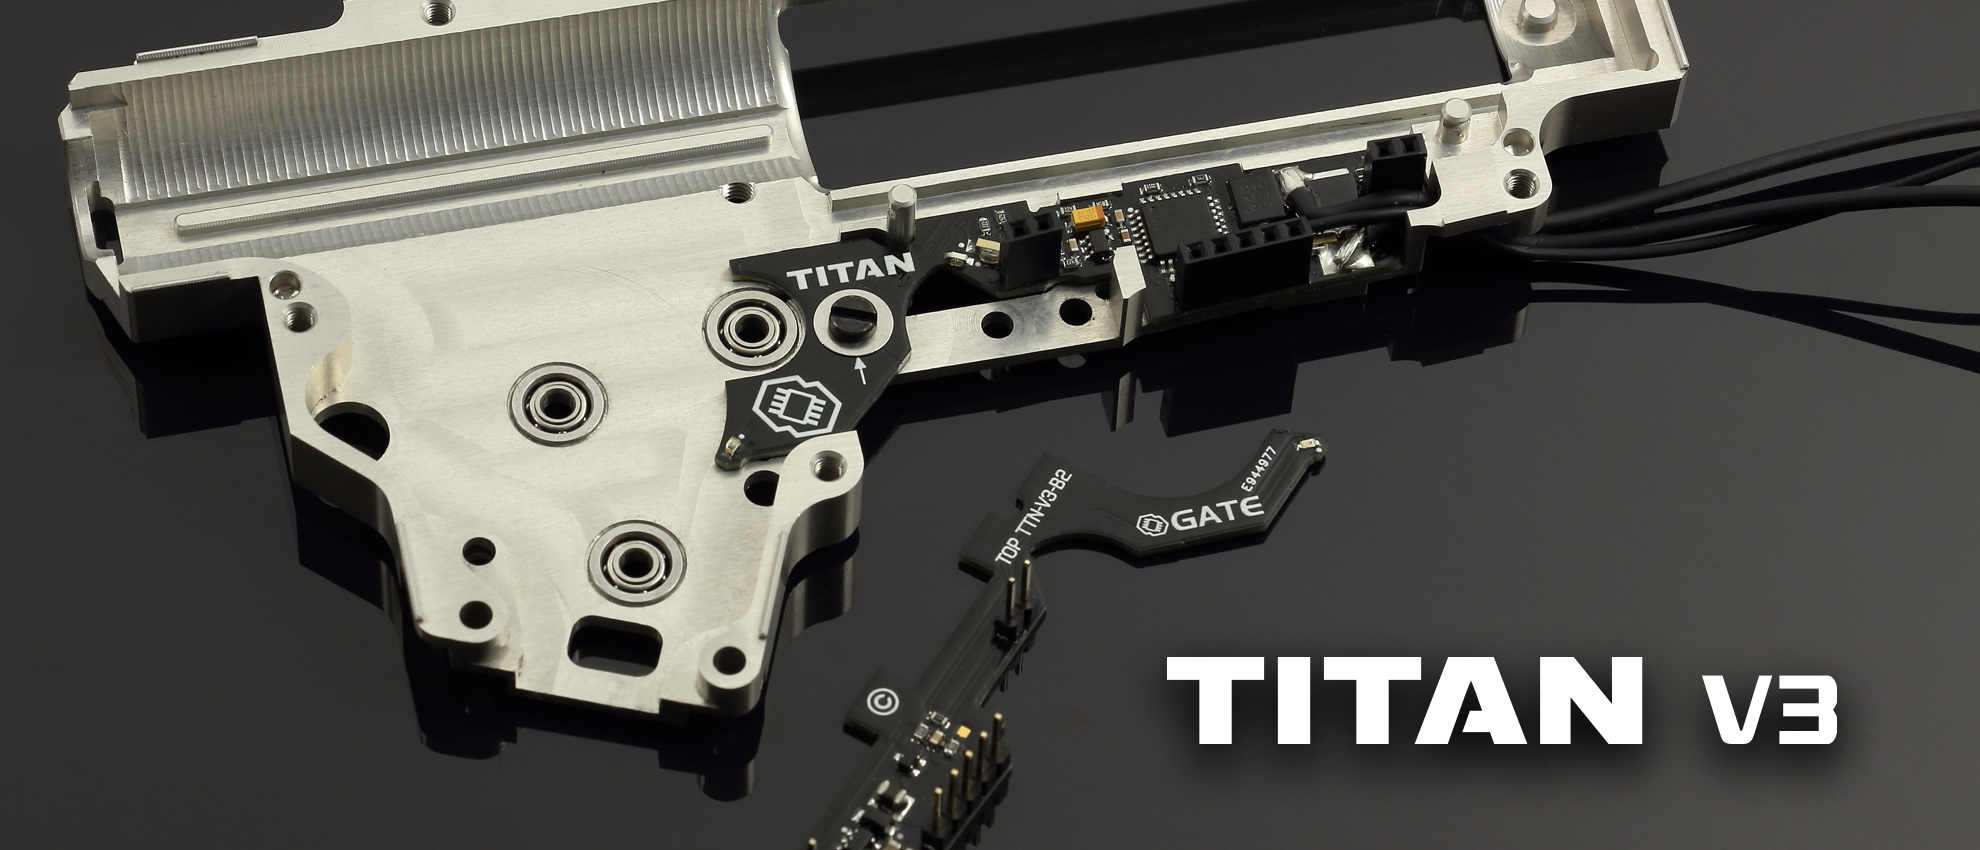 hight resolution of titan v3 is an aeg control system for v3 gearboxes which will transform your airsoft gun into an advanced training weapon adjust your aeg and check the